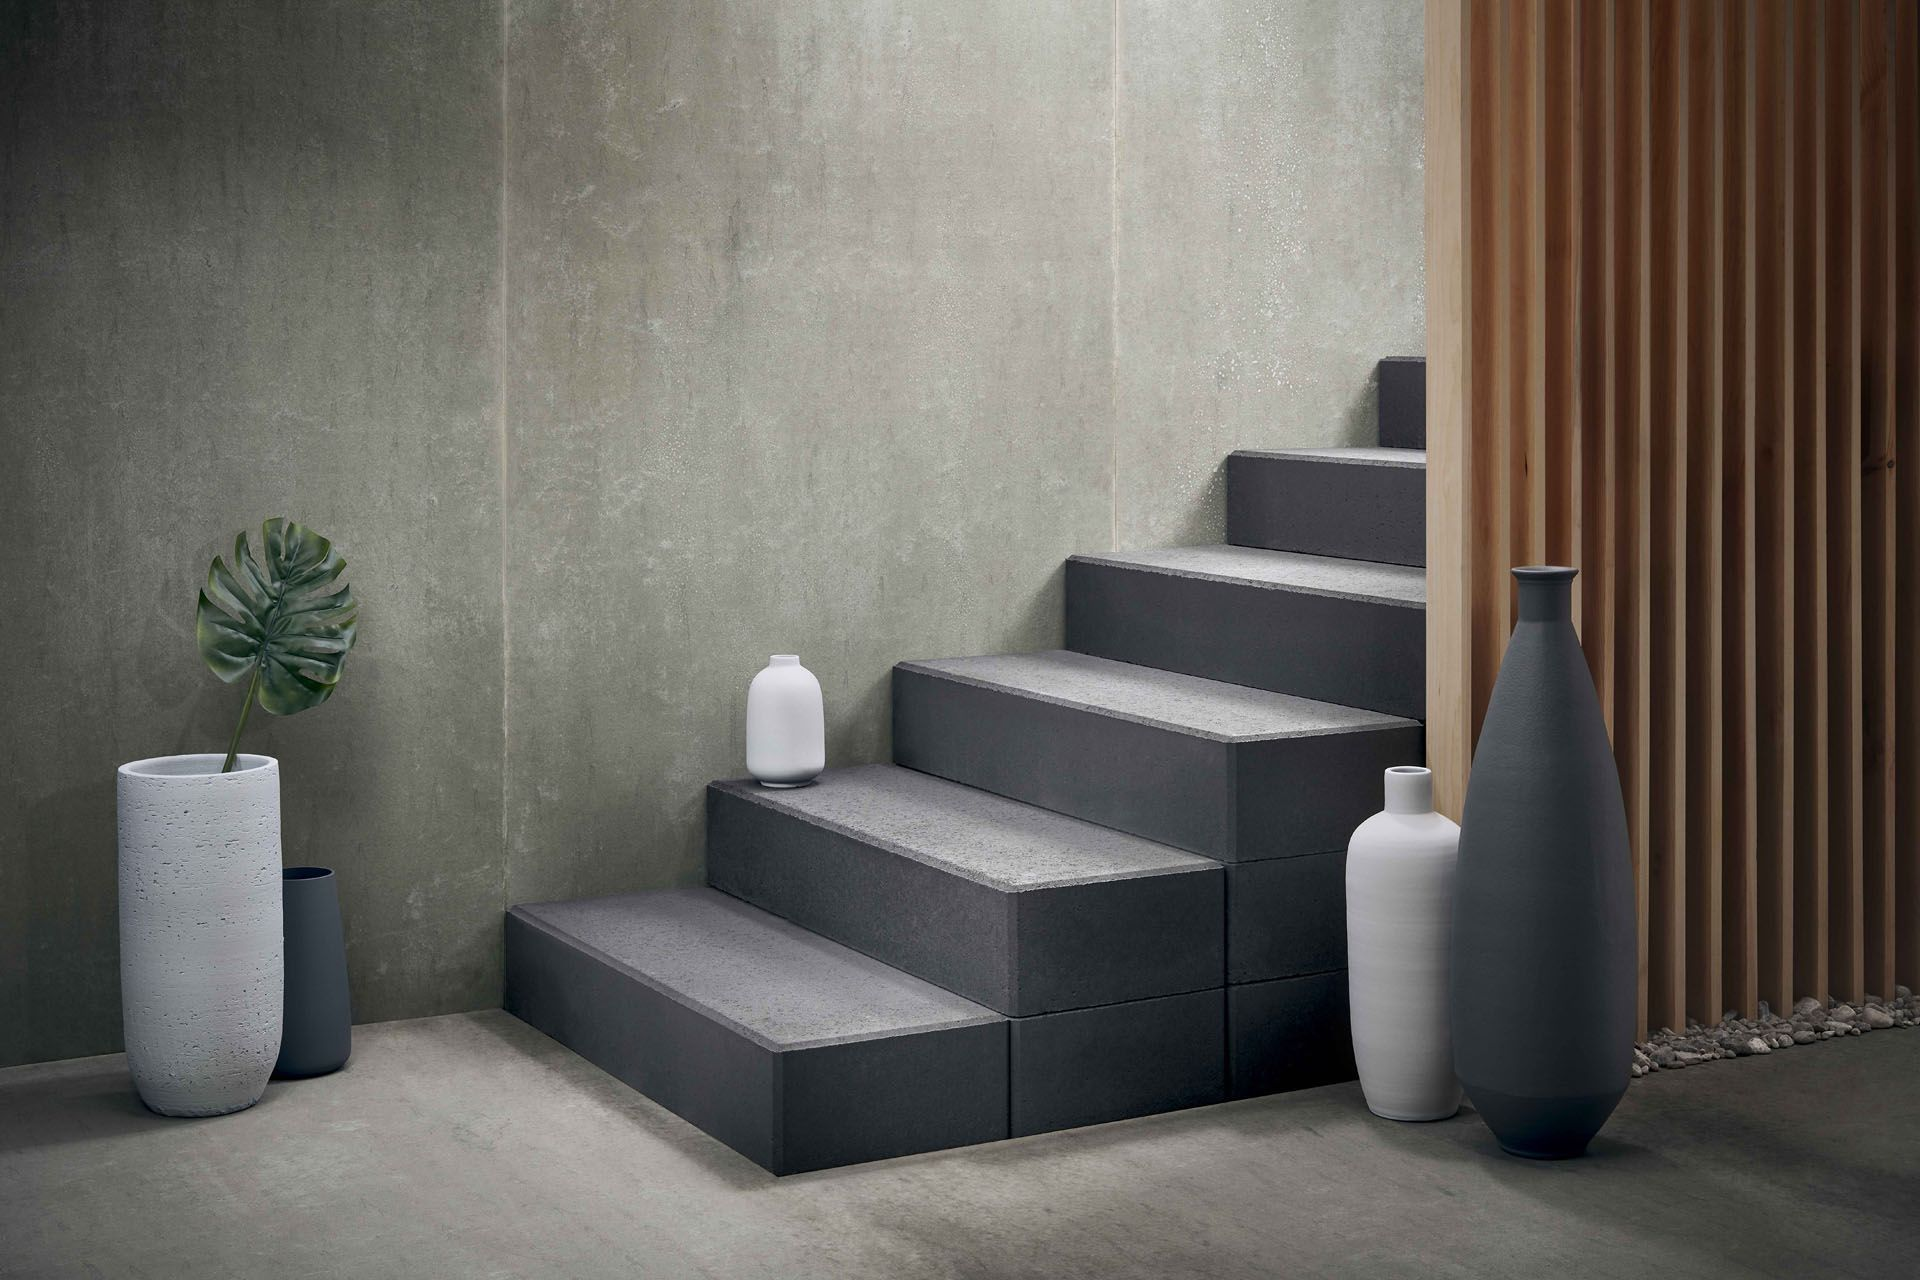 concrete grey stairs with wood slates on side and vases by Mathieu Lévesque for Techo Bloc